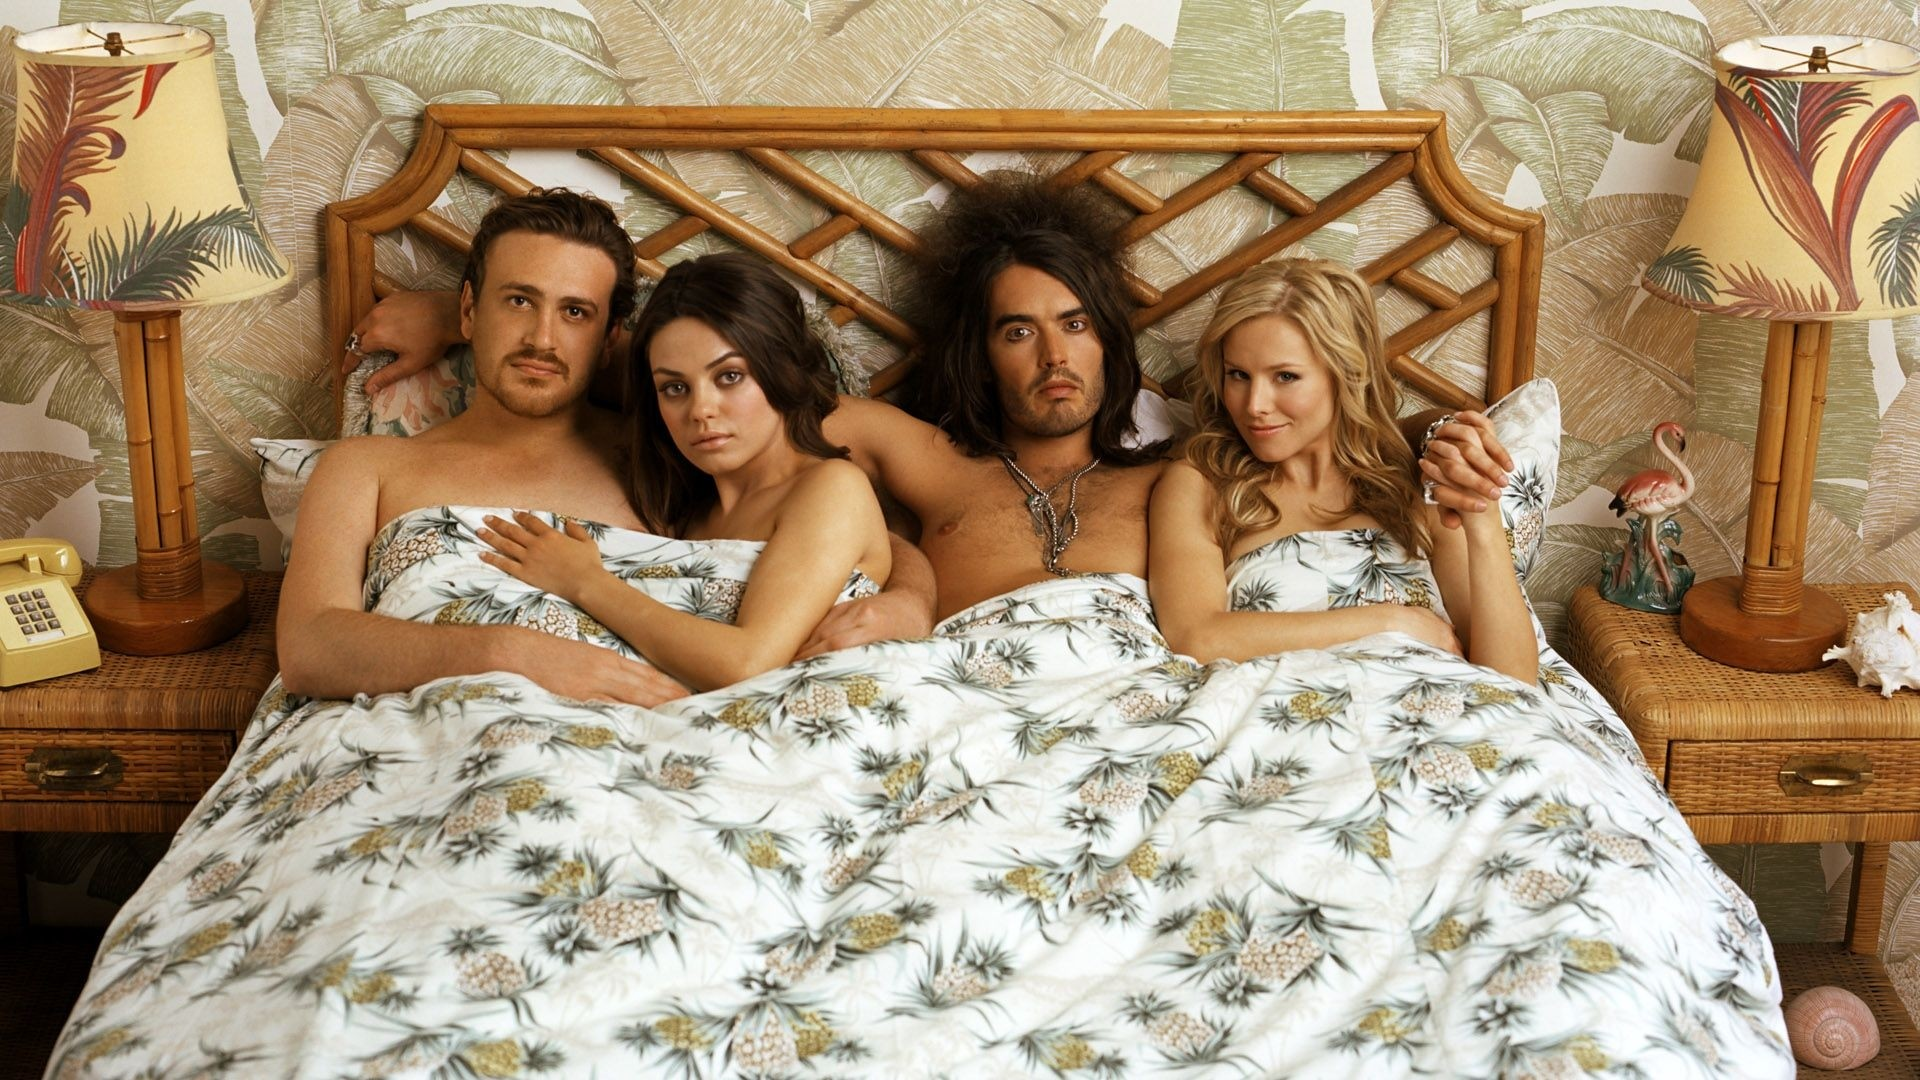 … forgetting sarah marshall, actors, bed